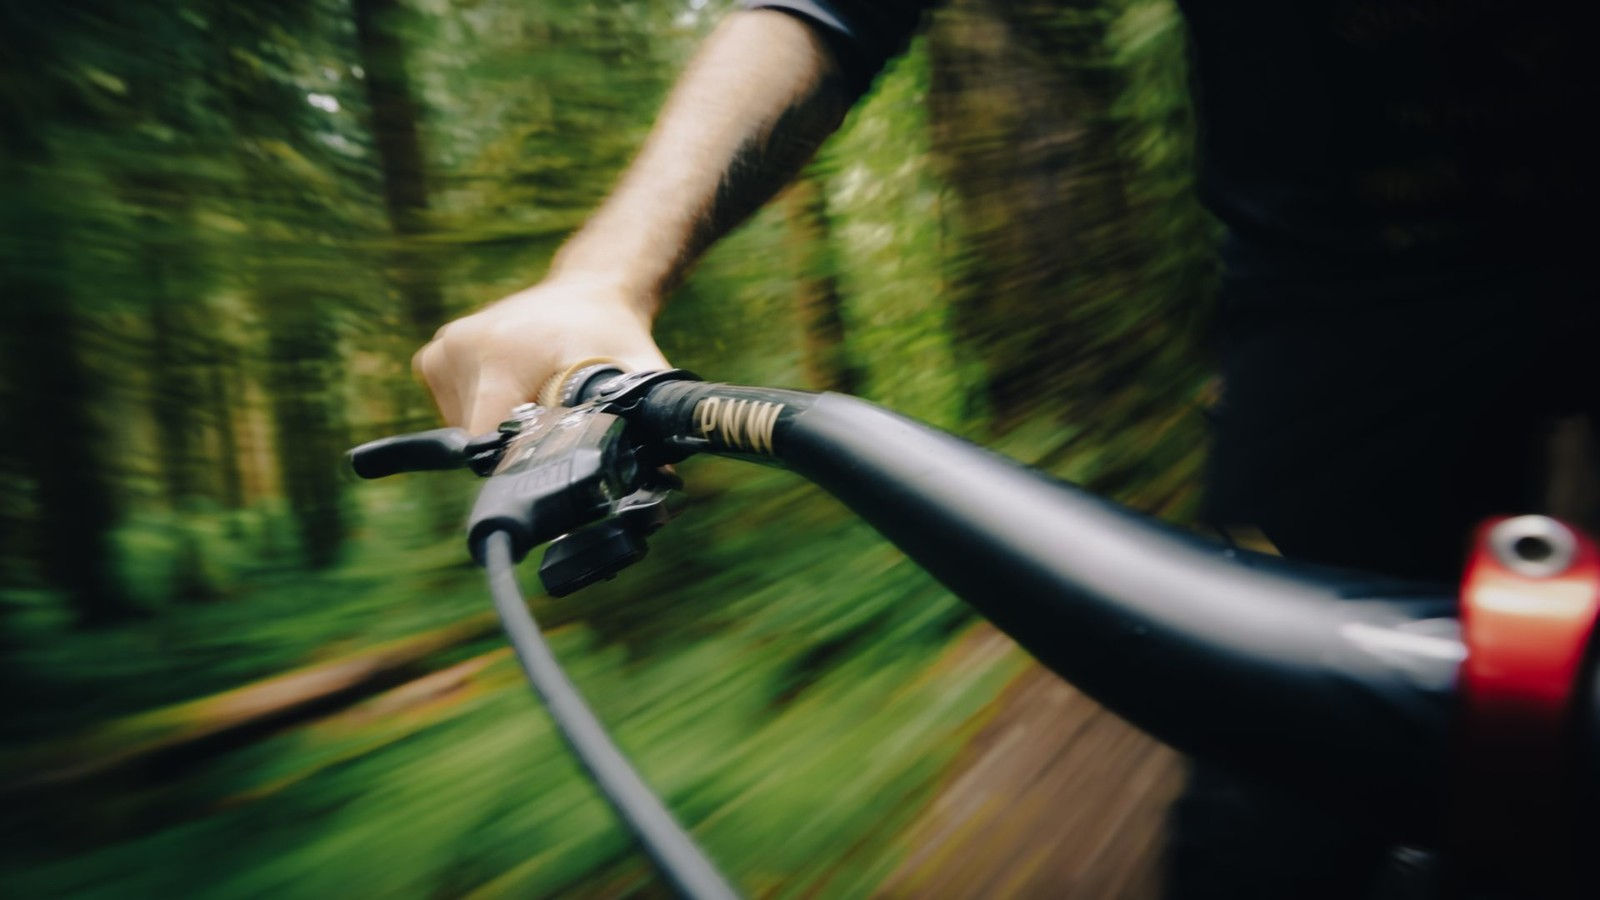 PNW Components Introduces New Range Handlebar and Stem